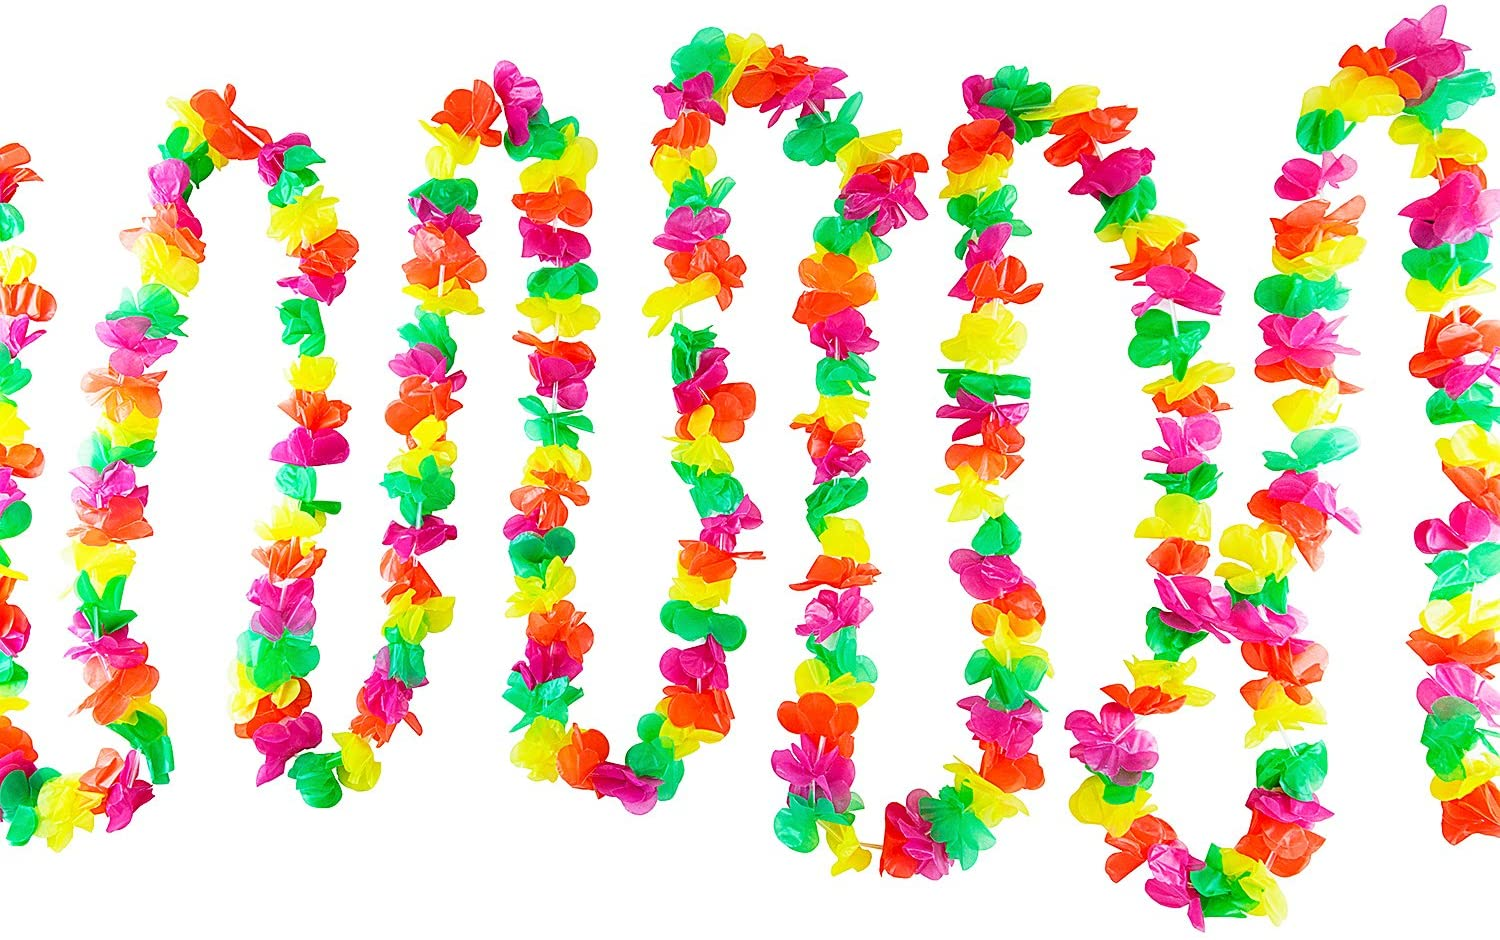 100 Foot Long Tropical Multicolored Plastic Garland Flower Hula Leis Hawaiian Island Leaves Banner for Party Decorations, Birthdays, Event Supplies, Festivals, Children & Adults